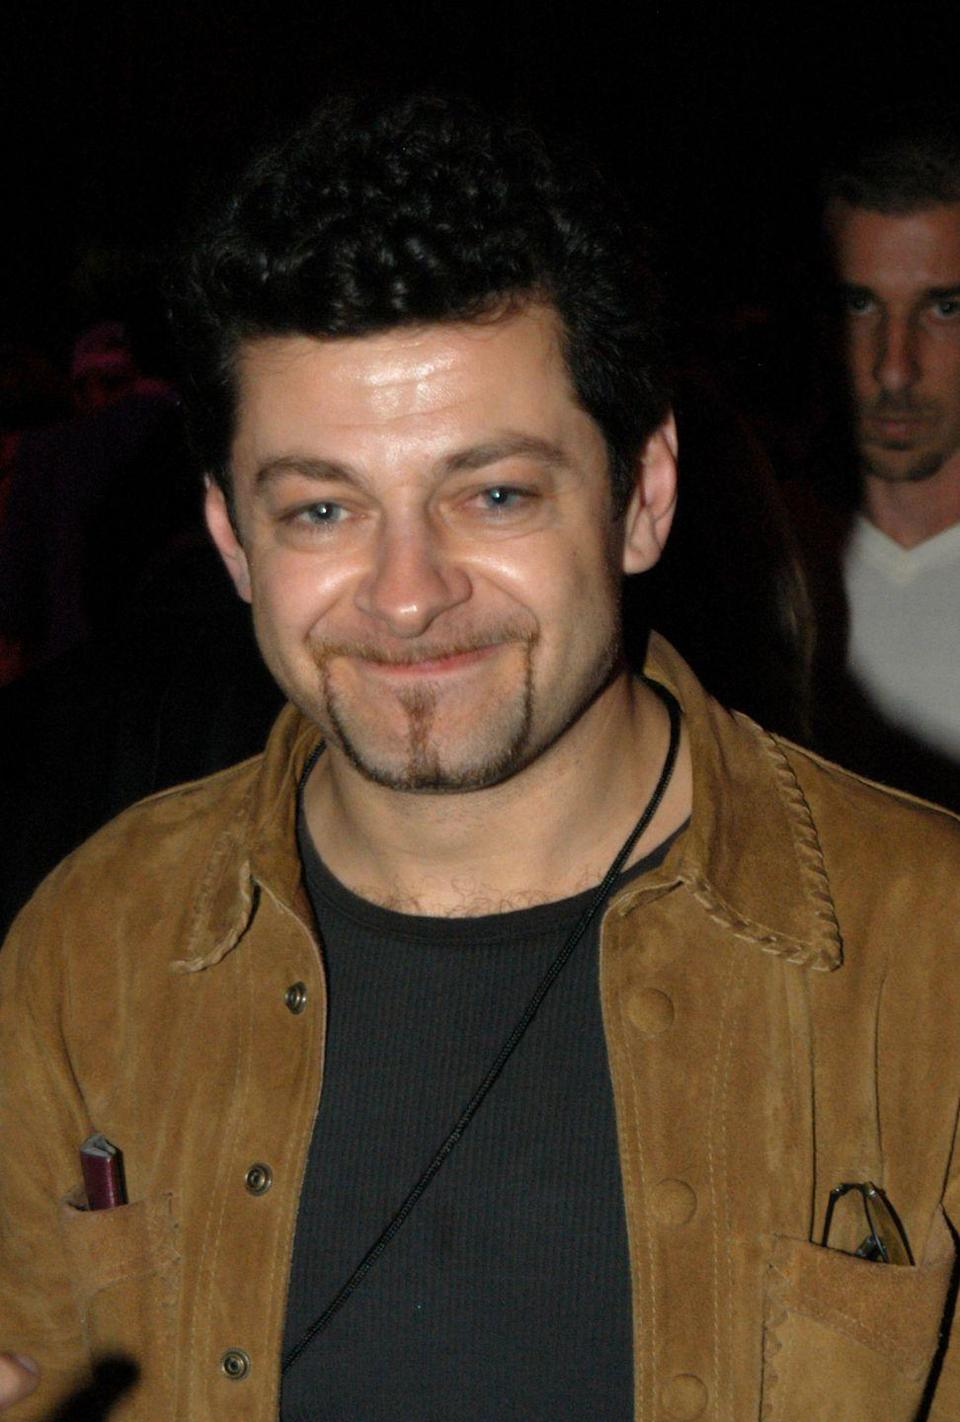 <p>A professional motion-capture artist, Serkis played the CGI character of Snoke the in <em>Star Wars</em> movies. Serkis also played Gollum in the <em>Lord of the Rings</em> and <em>Hobbit</em> films. </p>